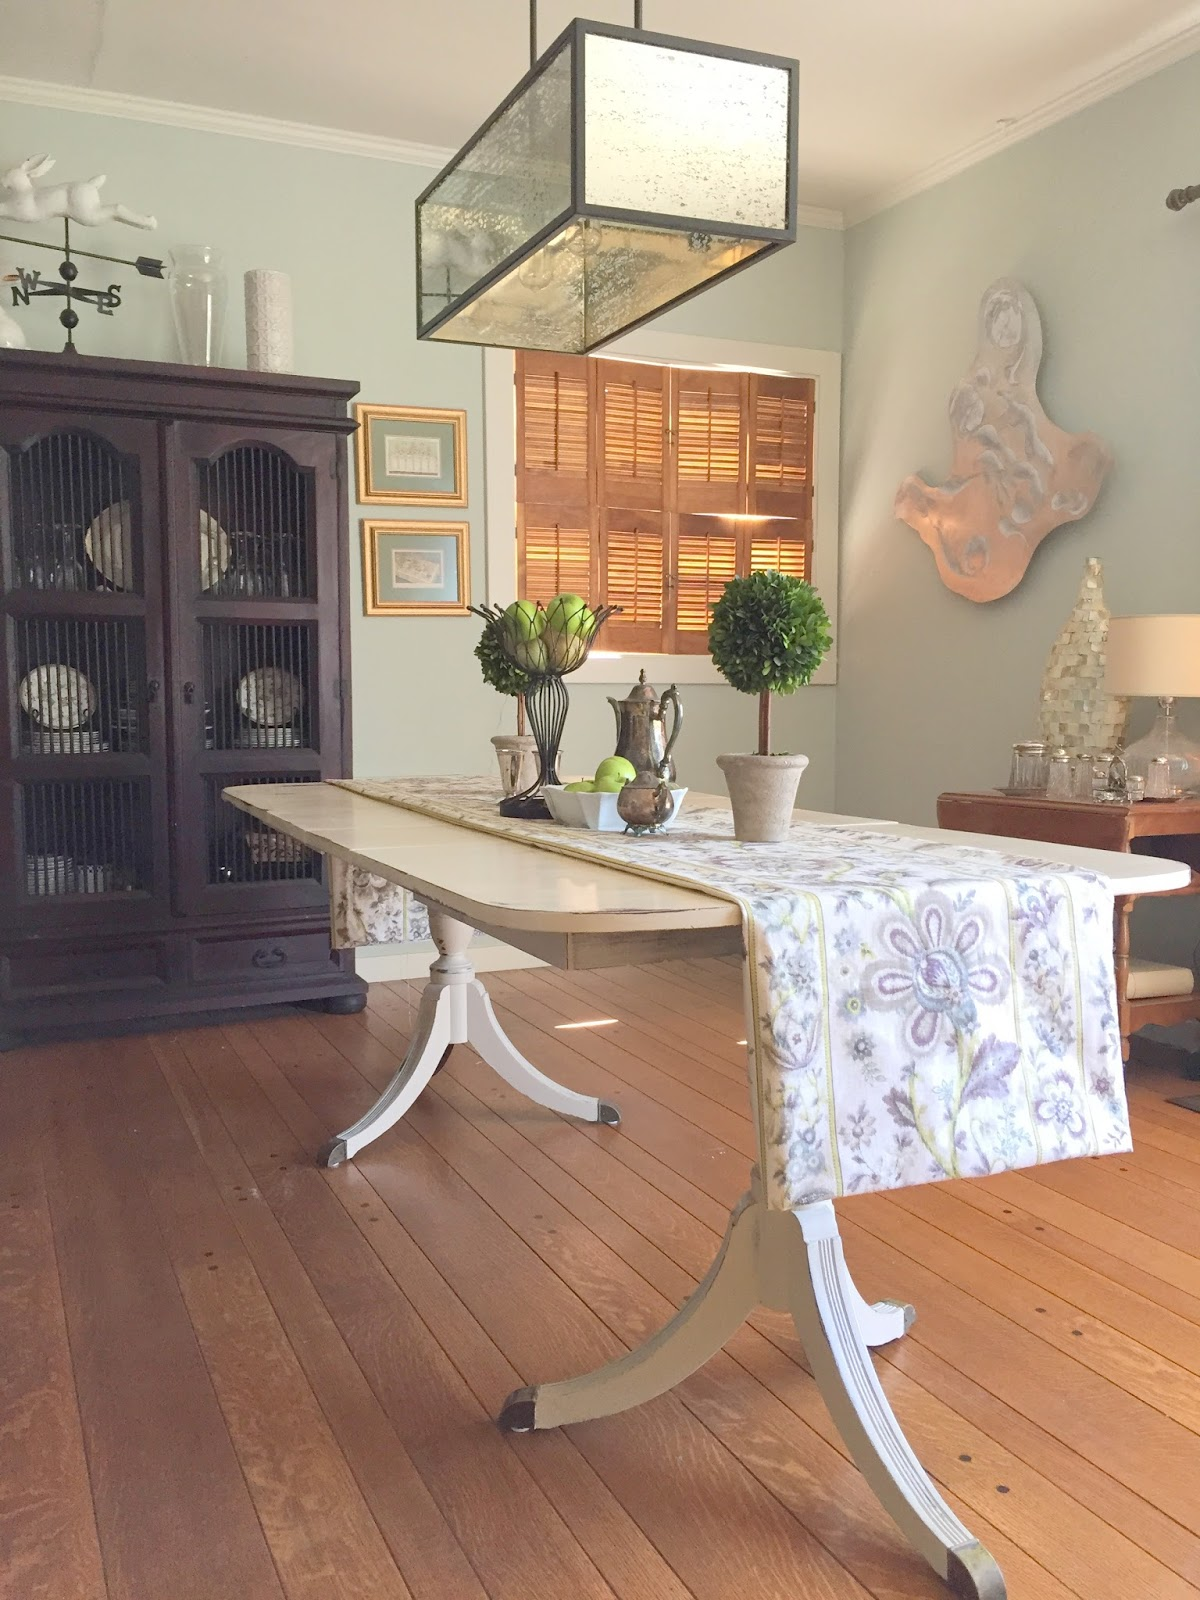 duncan phyfe dining room chairs. I Duncan Phyfe Dining Room Chairs